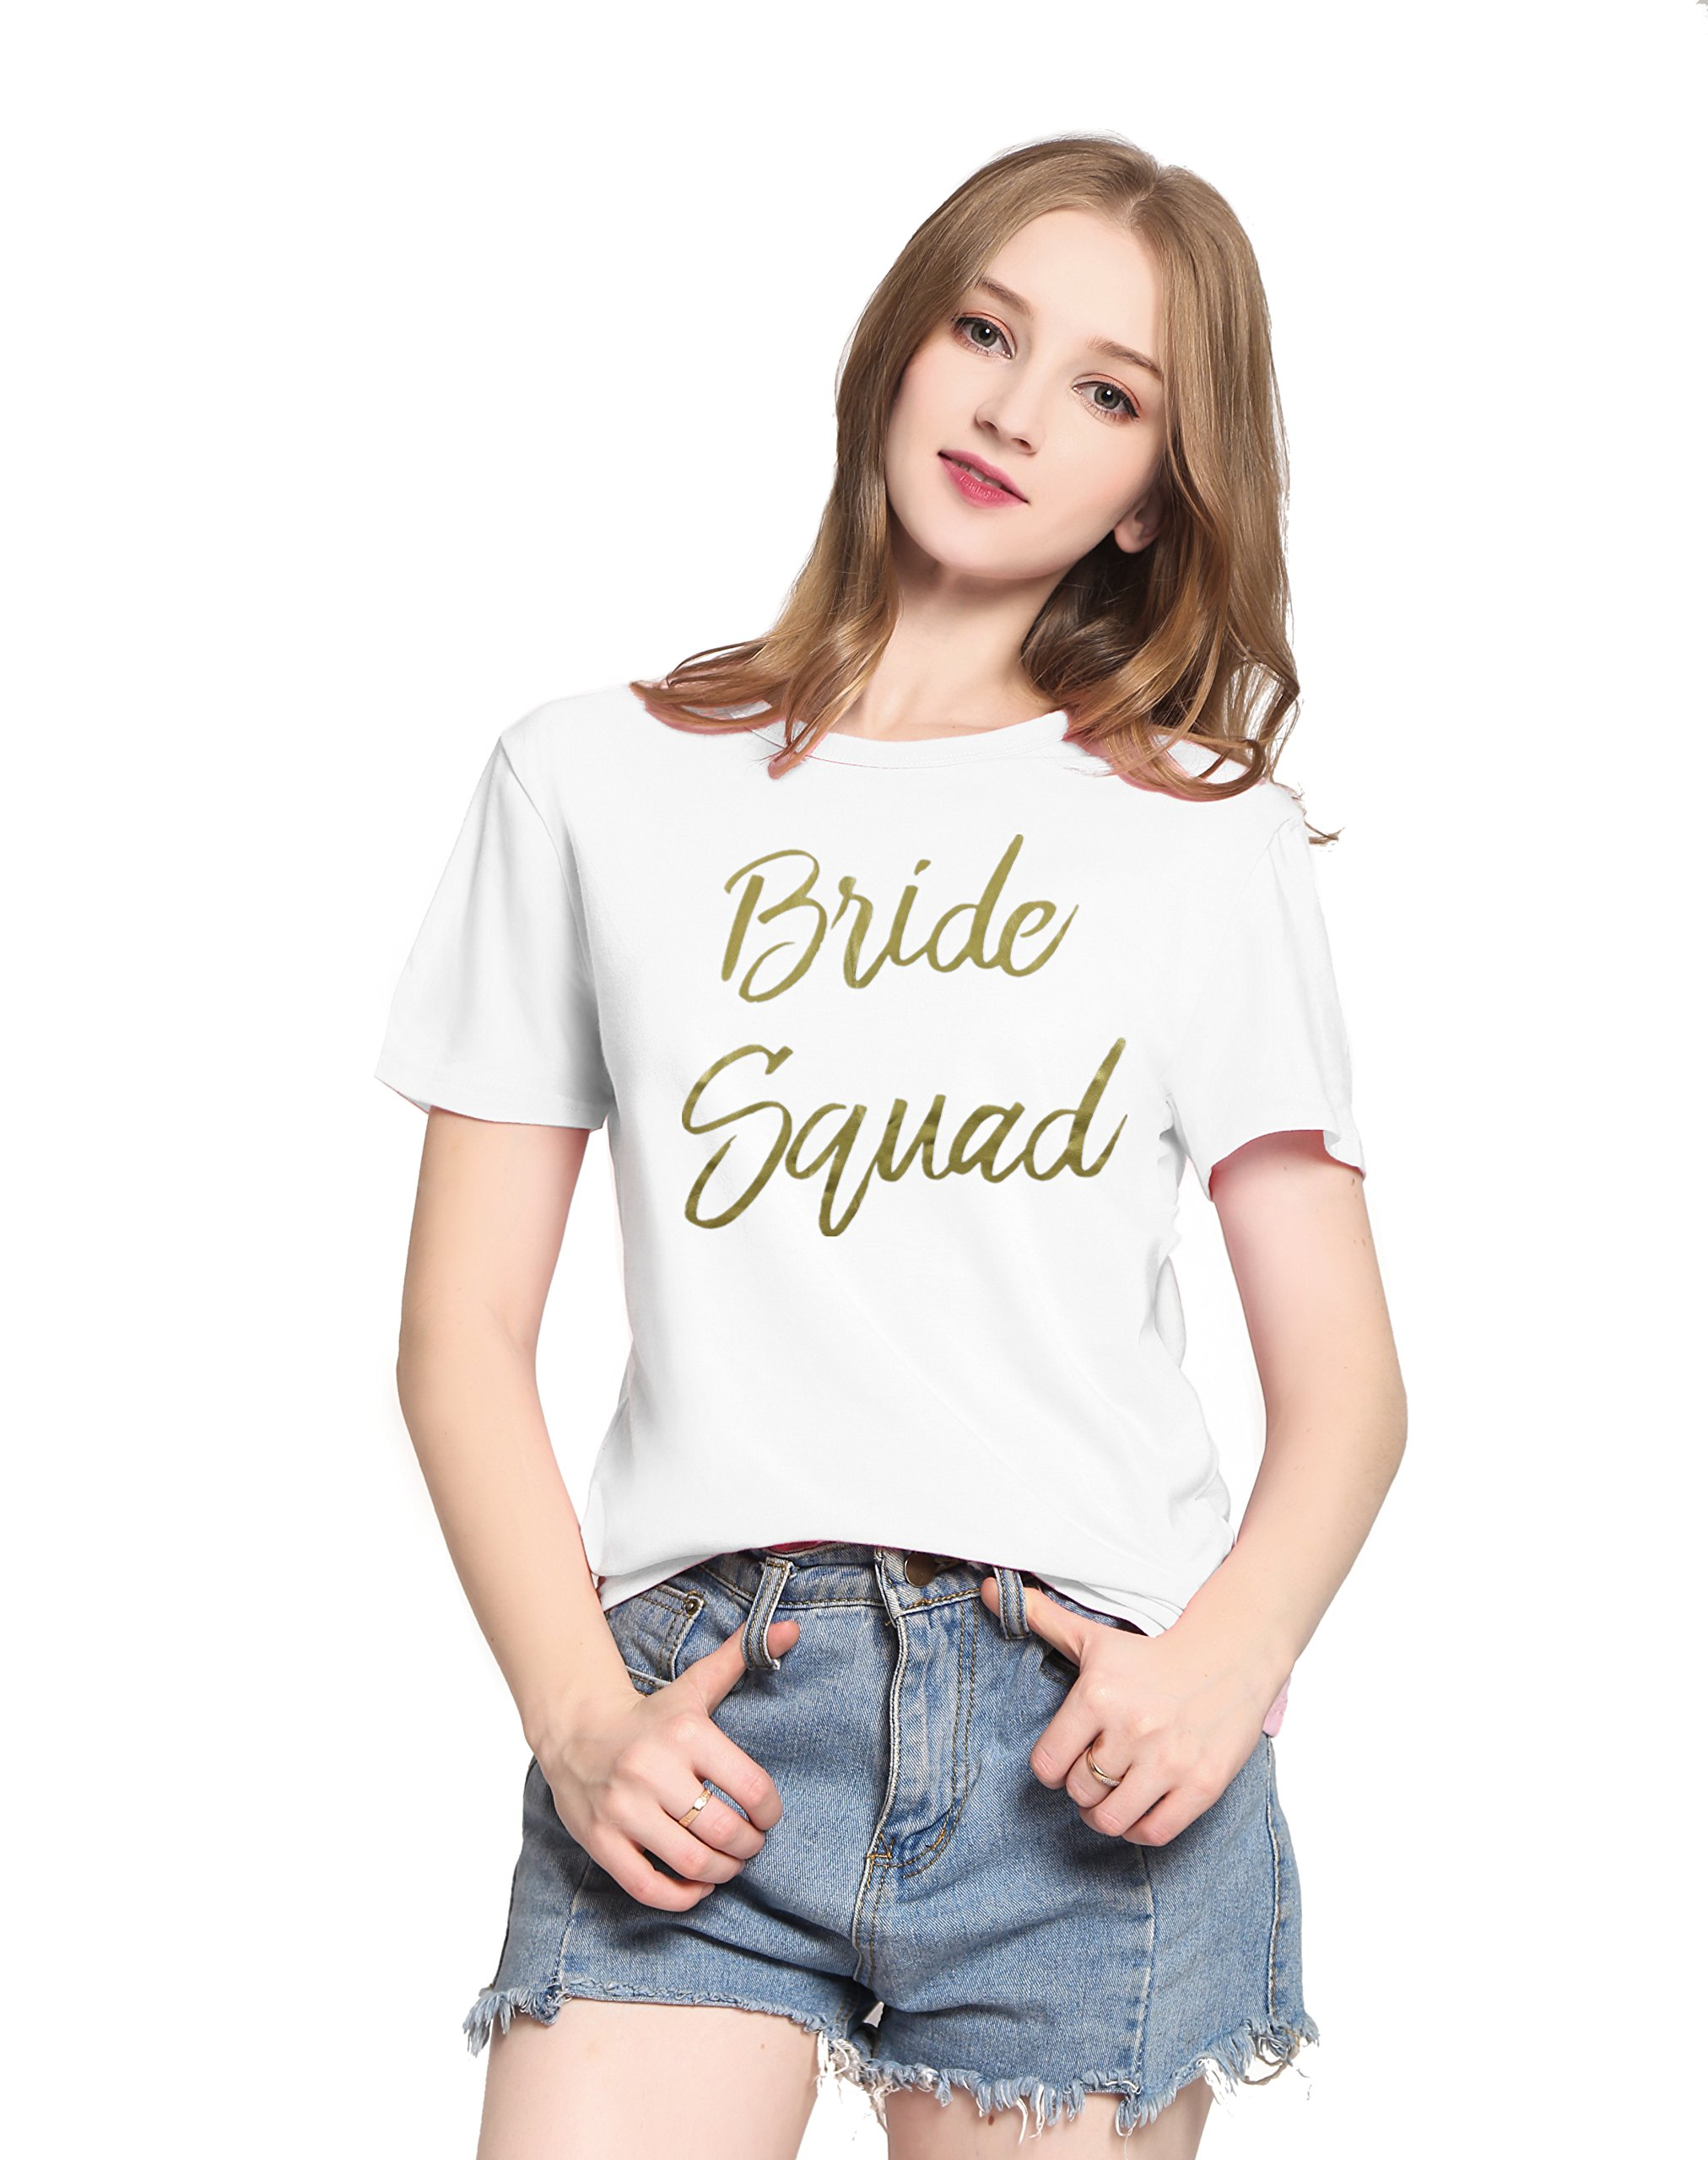 PINJIA Womens Cotton Wedding Bride Bachelorette Party Tshirts Top Tees Gift (XXXL,Gold White Bride Squad)